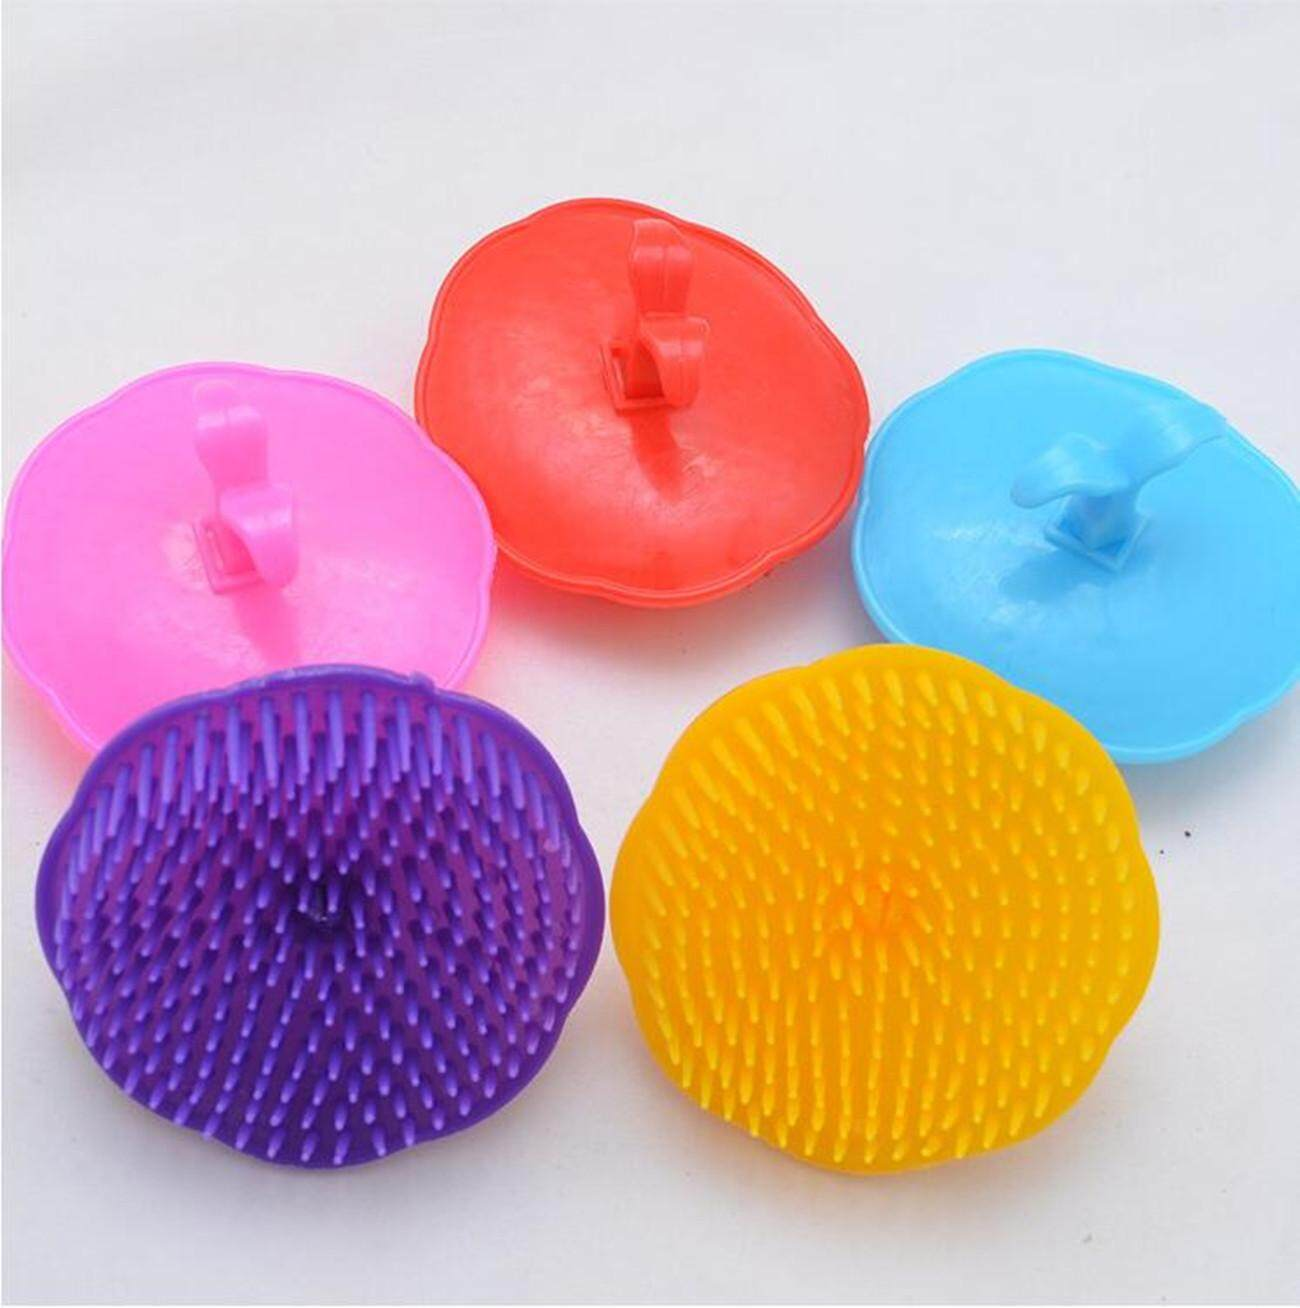 Topmissdeng 5pcs/lot Hair Massager Comb Scalp Shampoo Washing Hair Massage Brush Shower Body Random